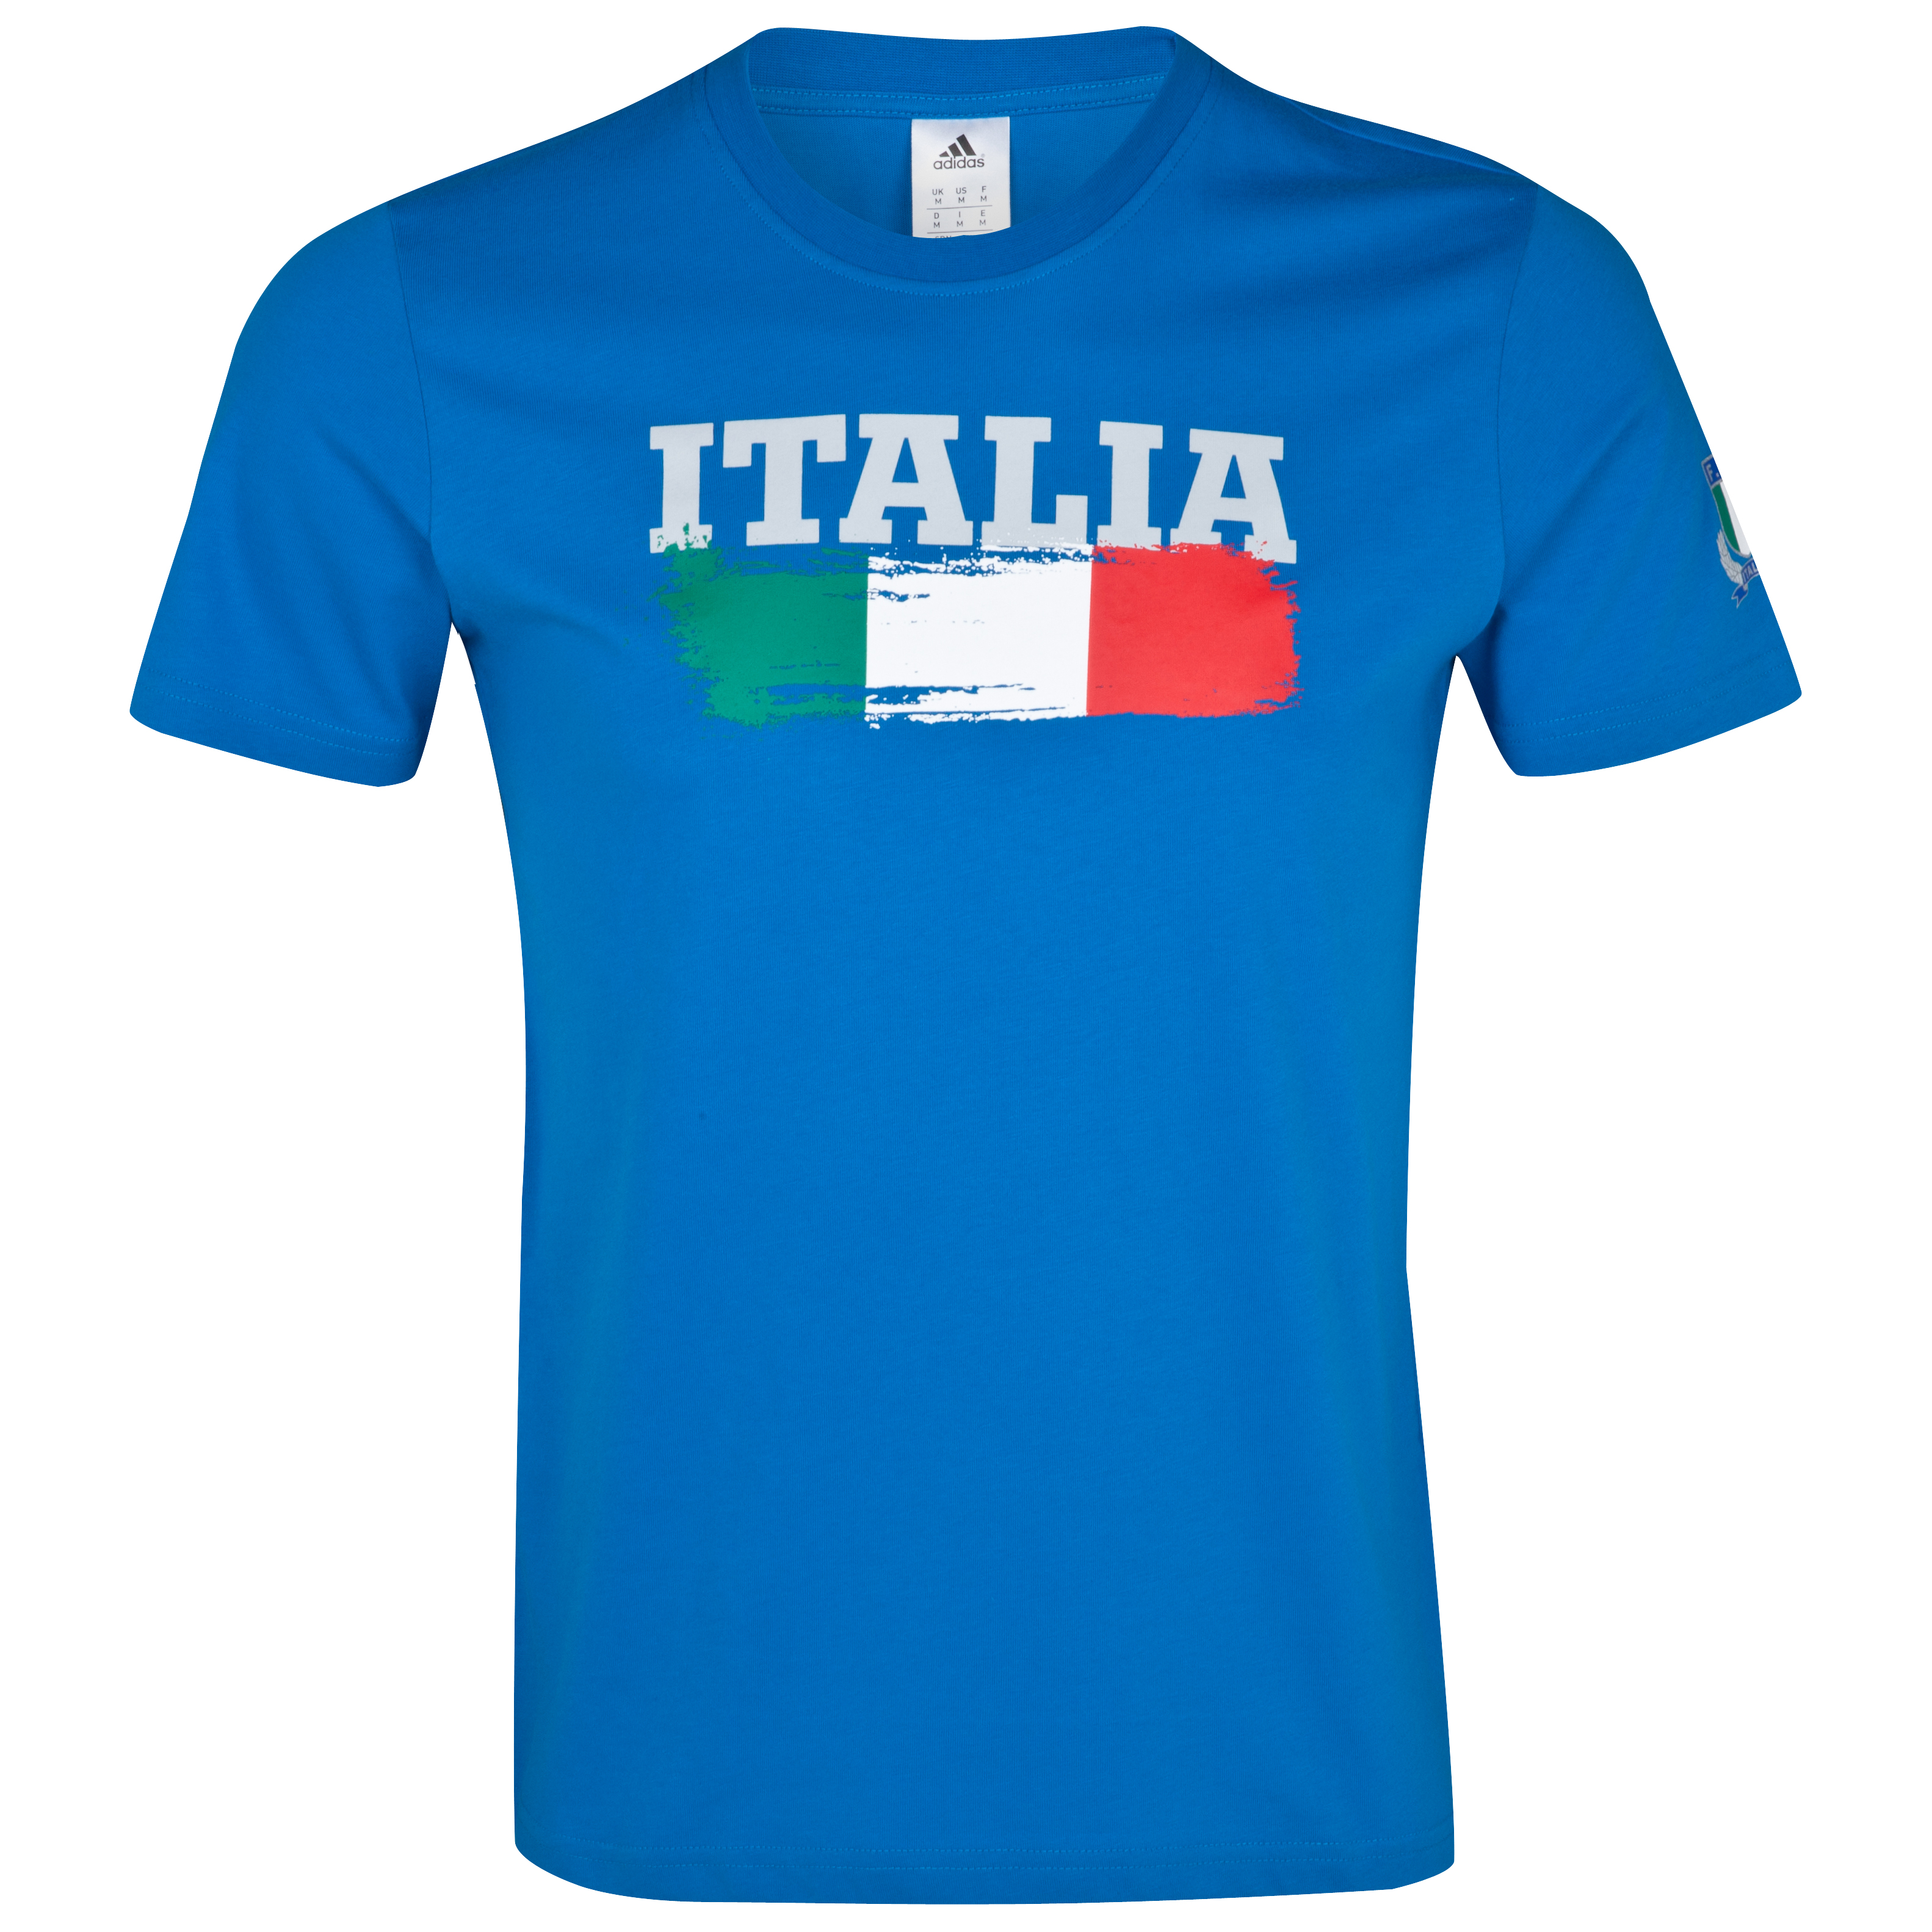 Italy Rugby T-Shirt - Craft Blue